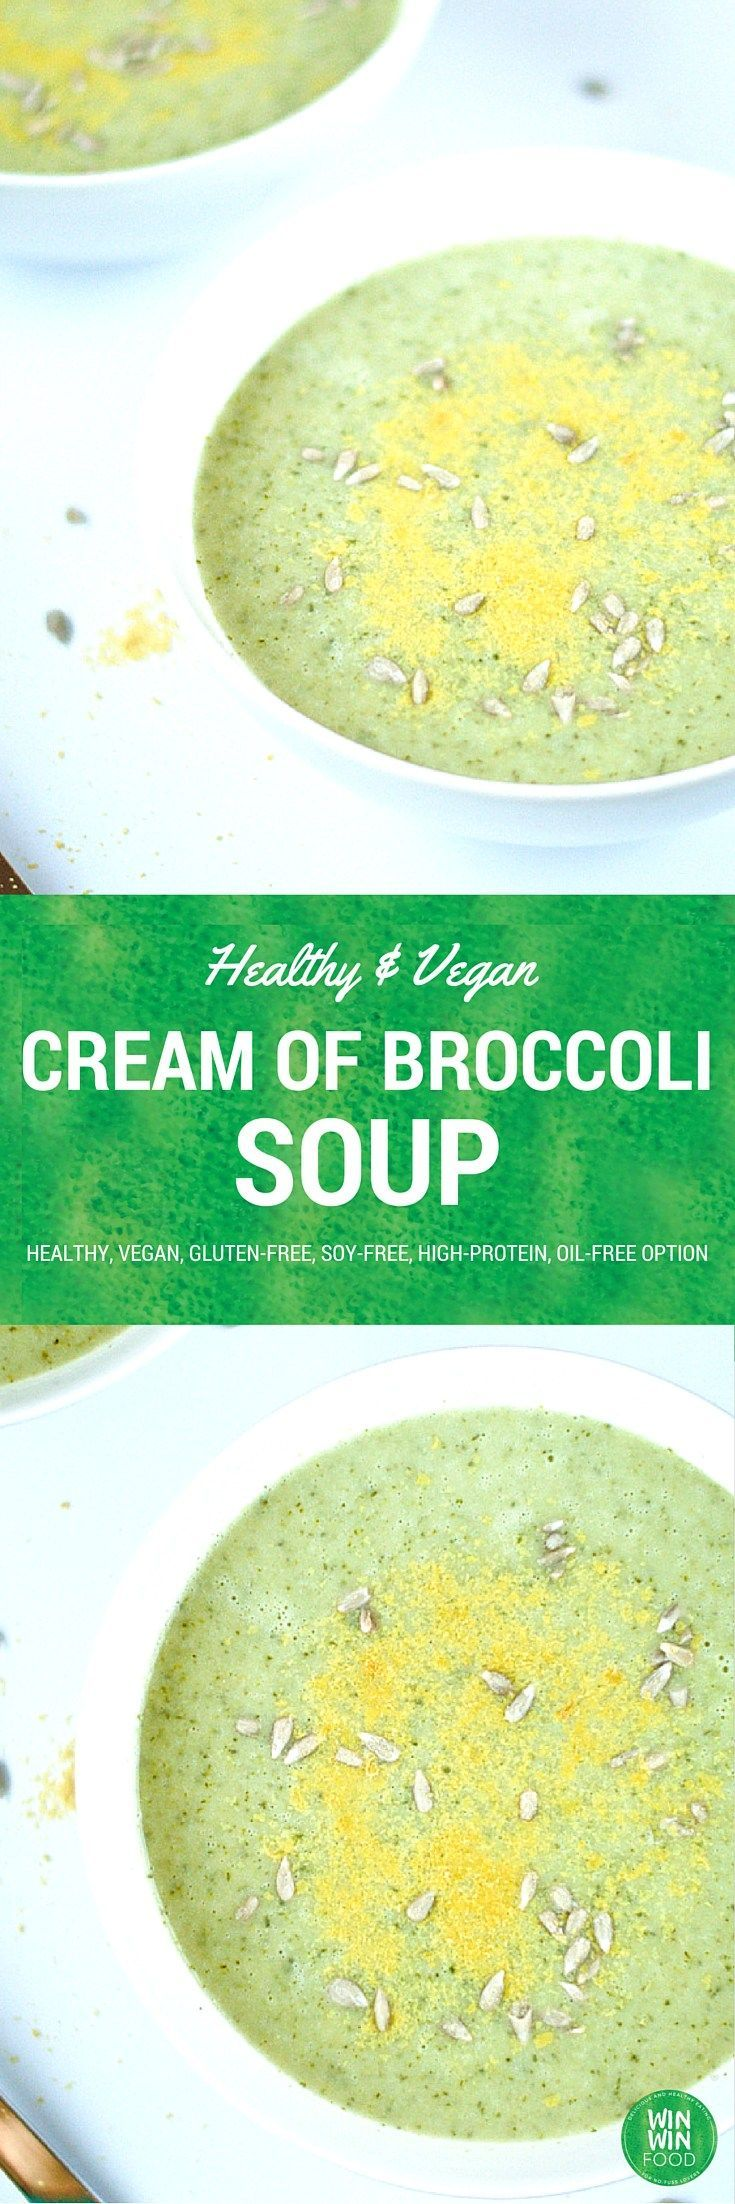 Cream of broccoli soup, Broccoli soup and Vegans on Pinterest